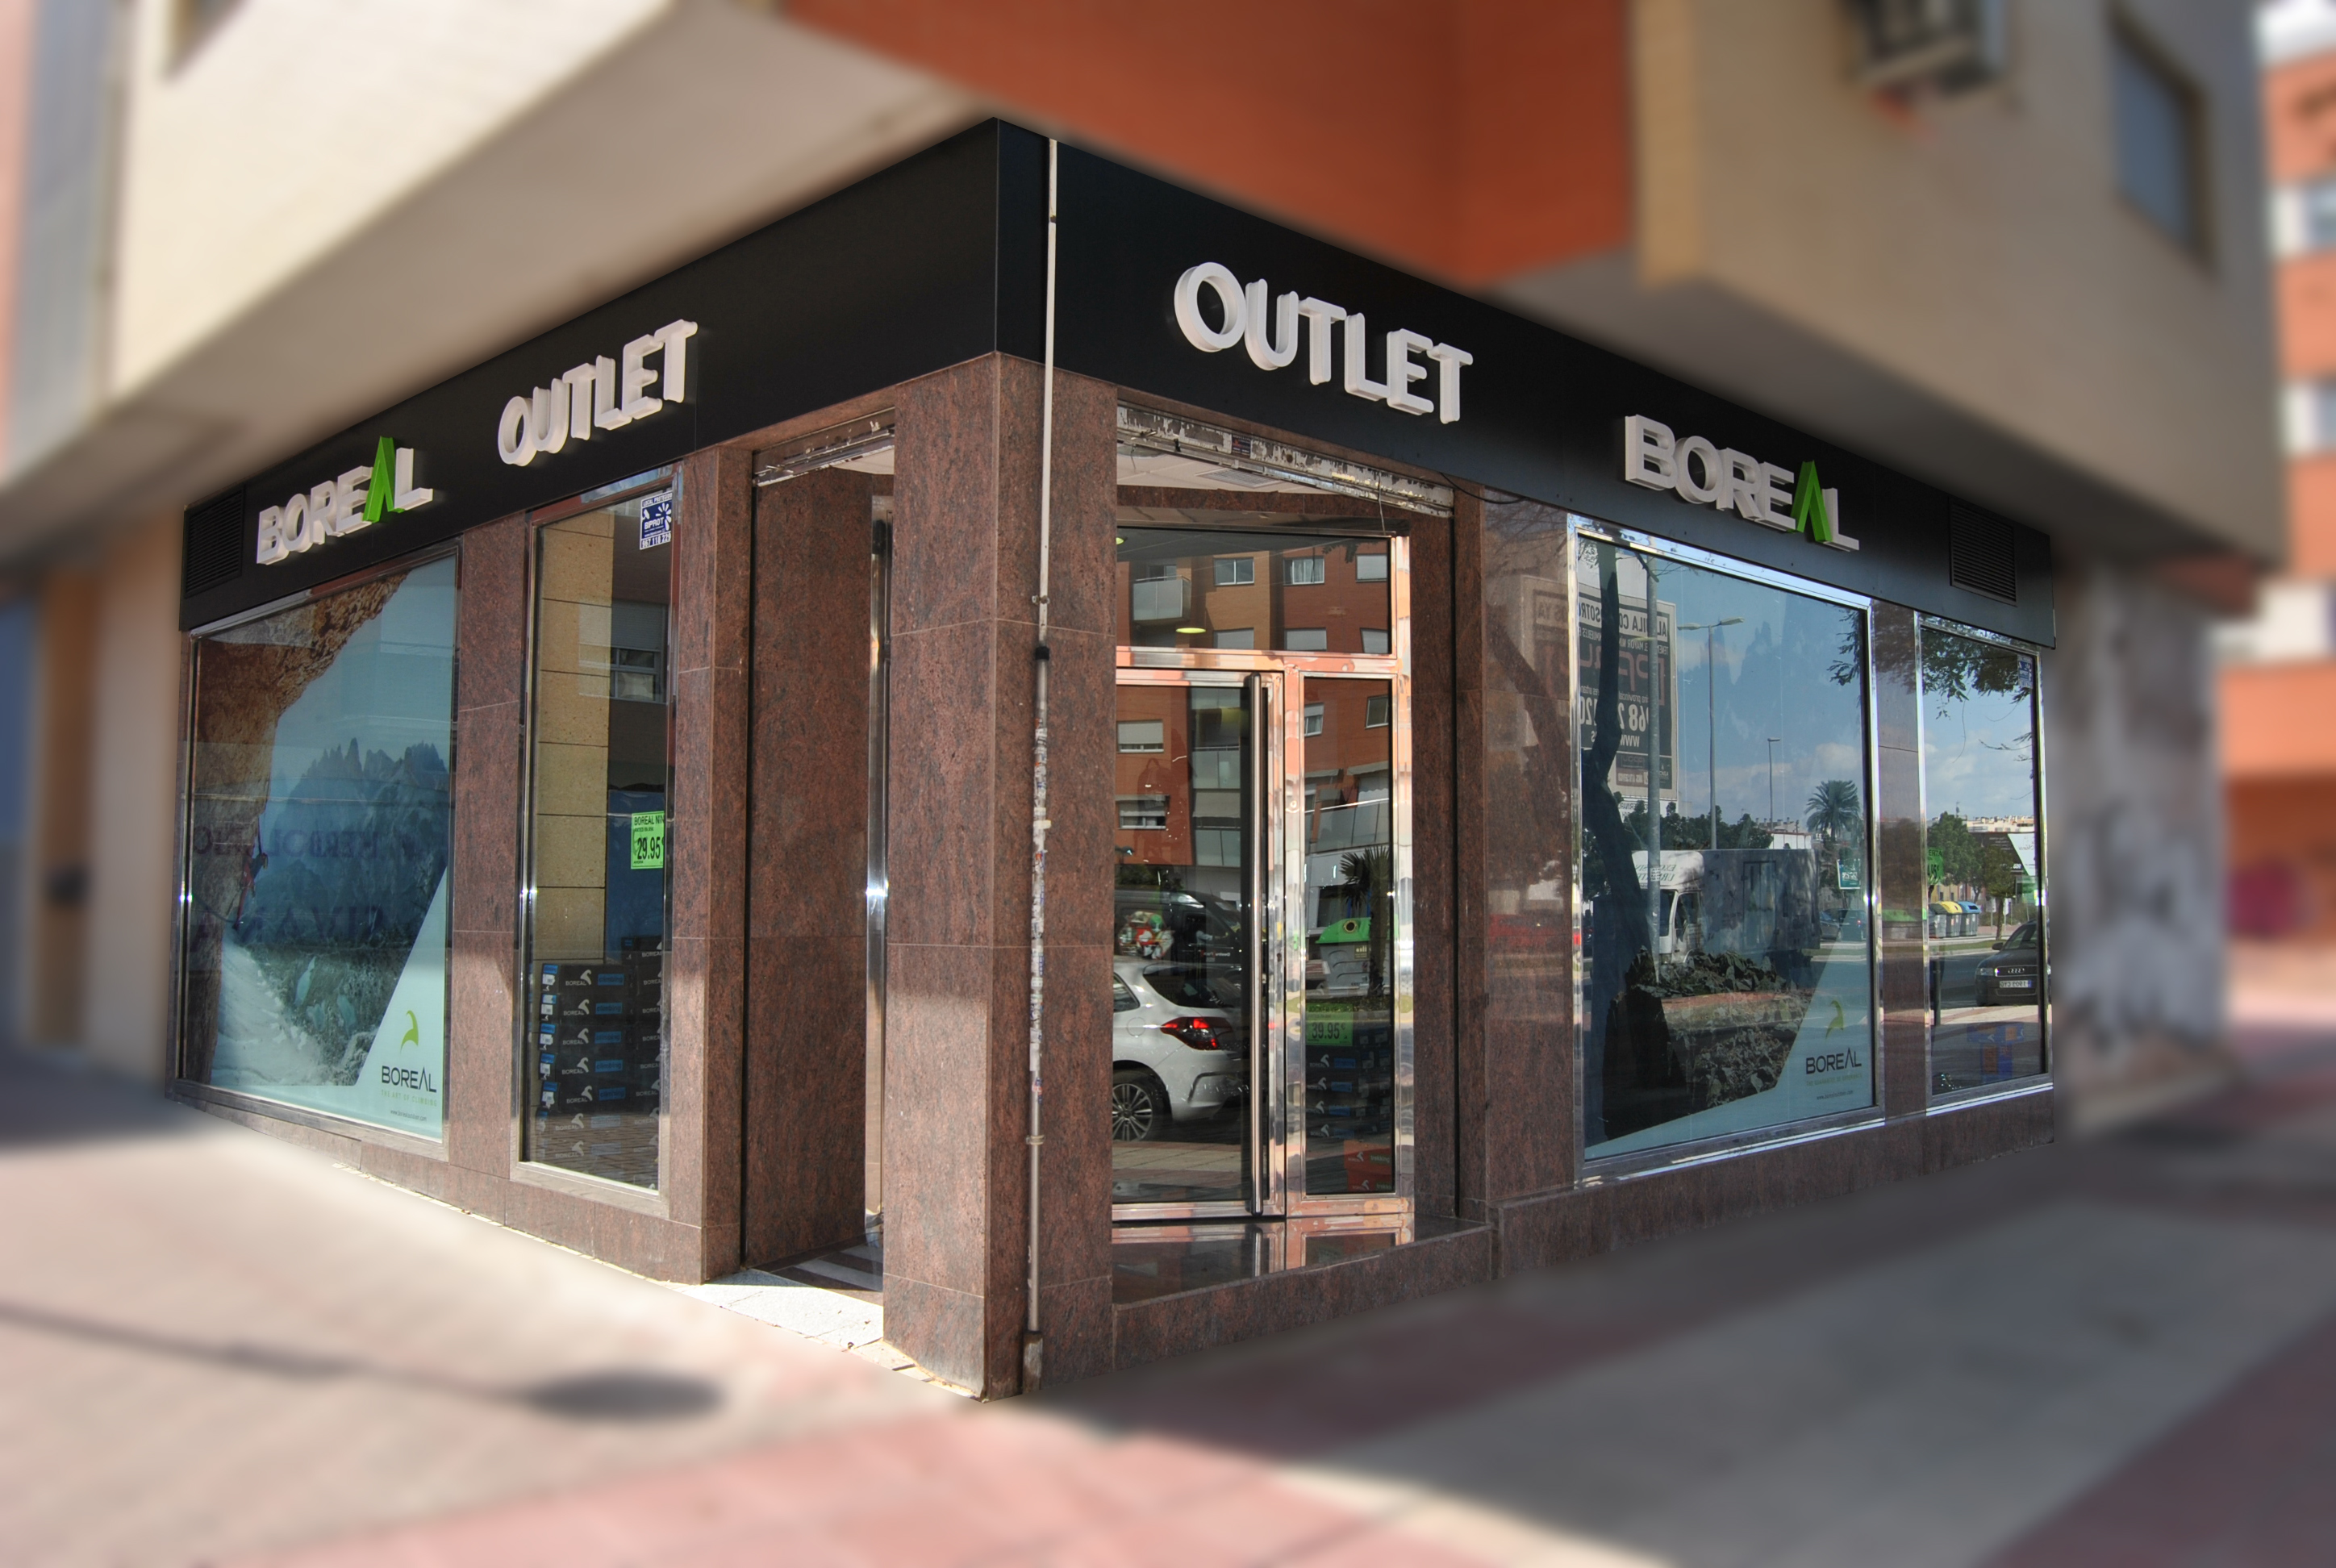 Fmrm boreal outlet - Zapateria casas outlet ...